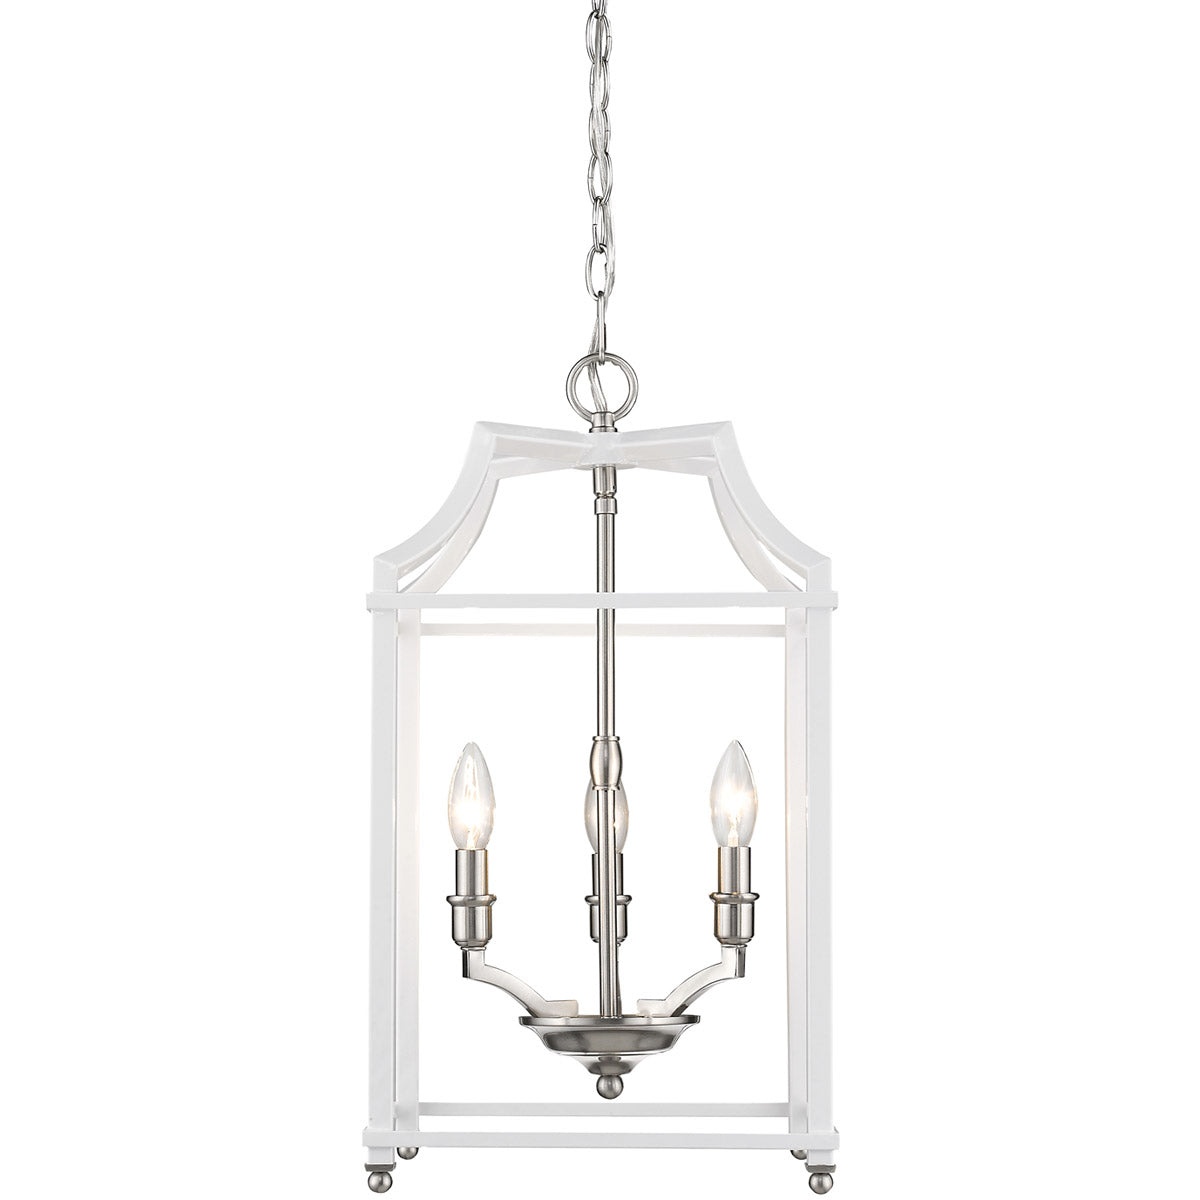 Leighton 3 Light Chandelier in Pewter/ White by Golden Lighting 8401-3P PW-WH